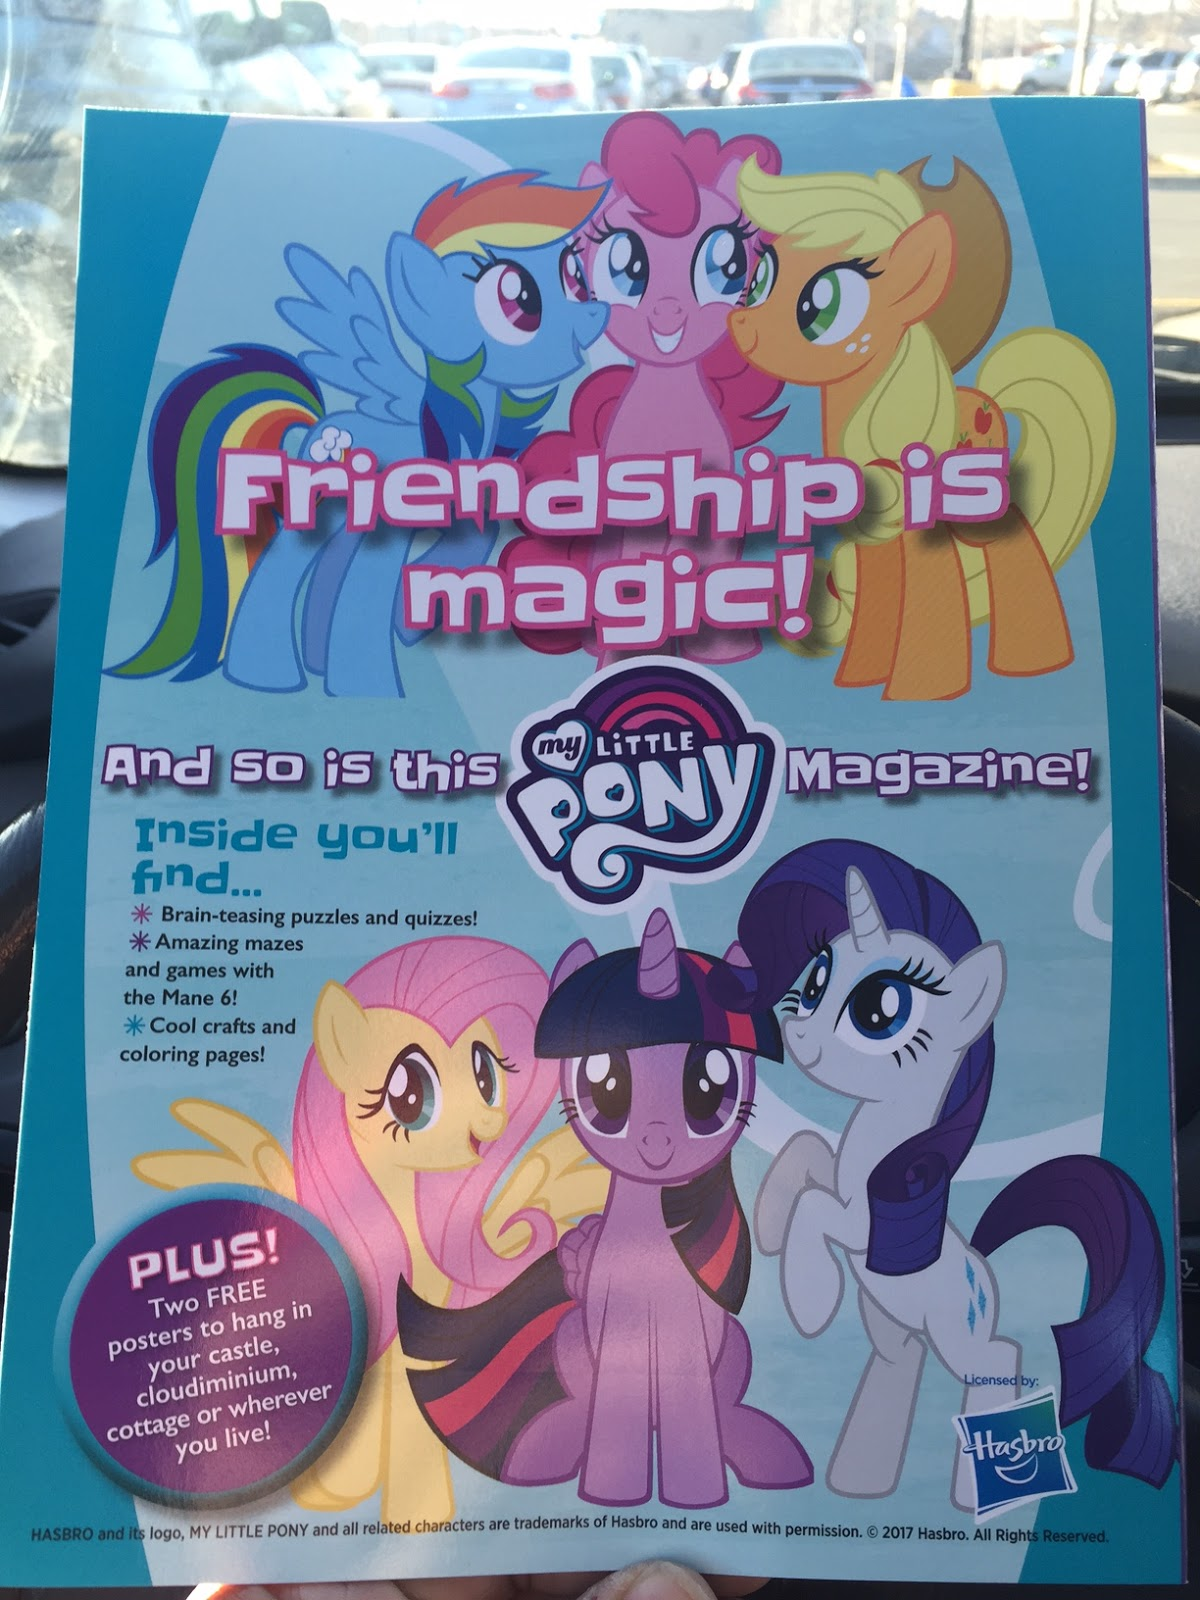 My little pony friendship is magic coloring pages hasbro -  And Even A Big Mlp Movie Section With The Ad Above And A Description We Are Still Working On Getting That But For Now You Can Find A Few Images Below